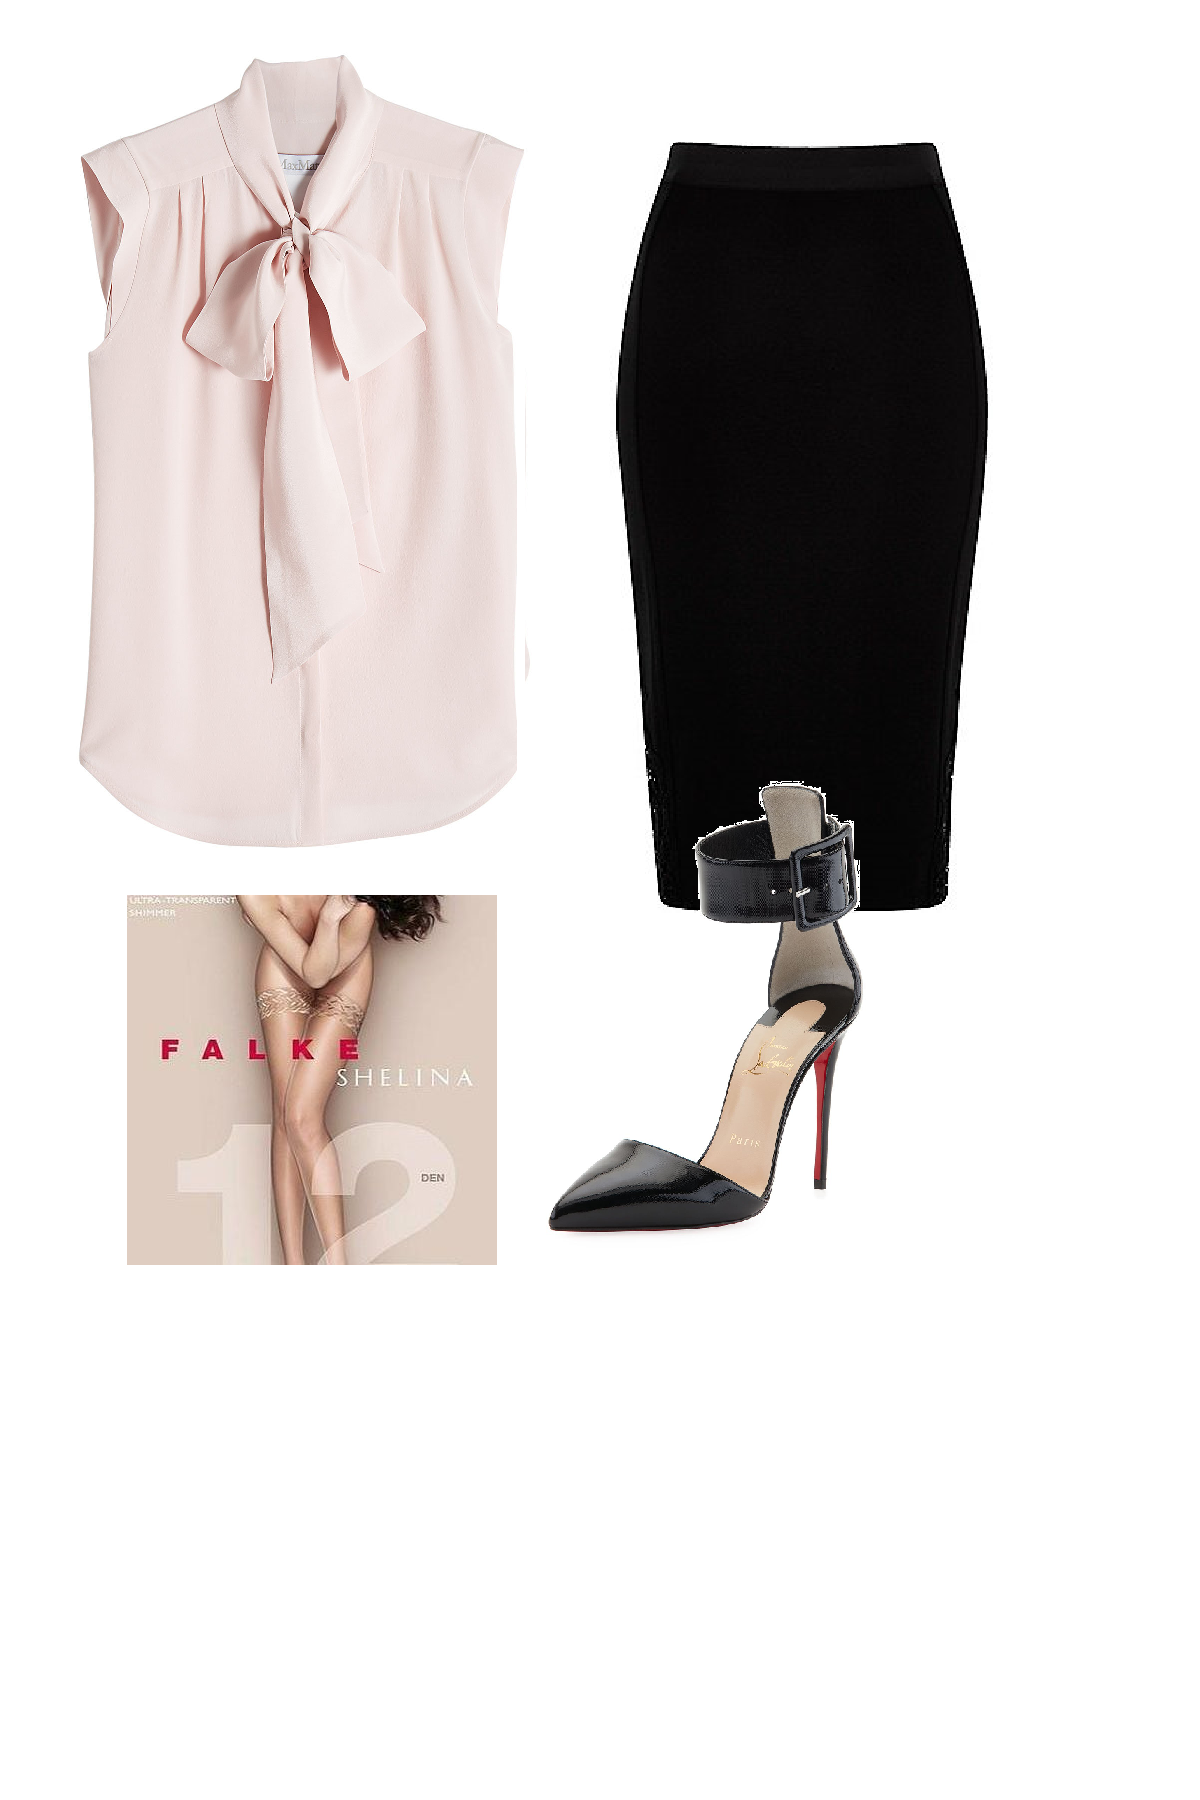 321a5be85ac Outfit for the office or evening with thigh highs. Outfit that incorporate  hosiery fashion.